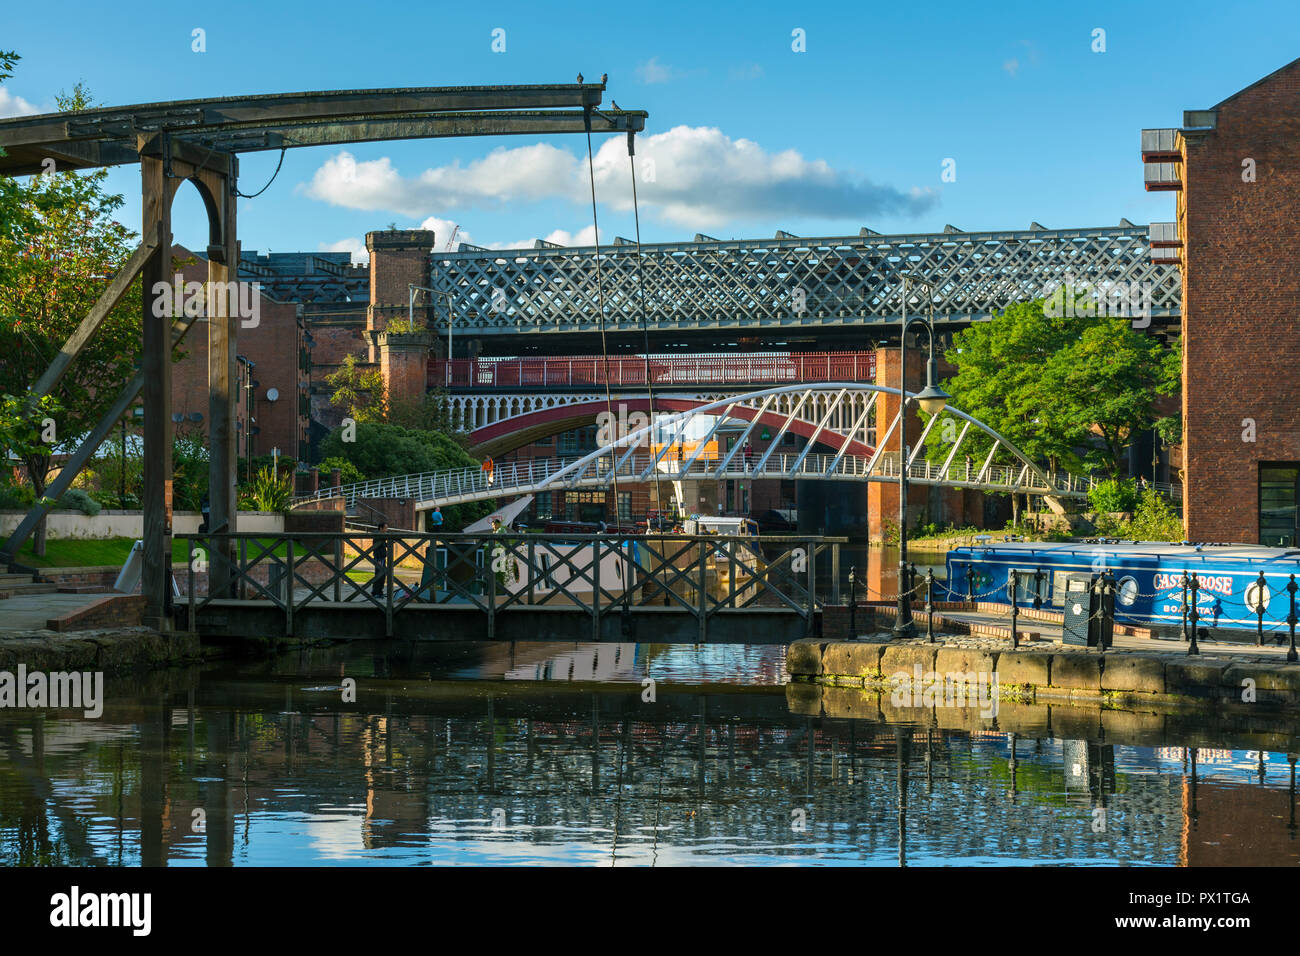 A bascule footbridge, the Merchants' Bridge and Victorian railway viaducts from the Middle Warehouse basin, Castlefield, Manchester, England, UK - Stock Image